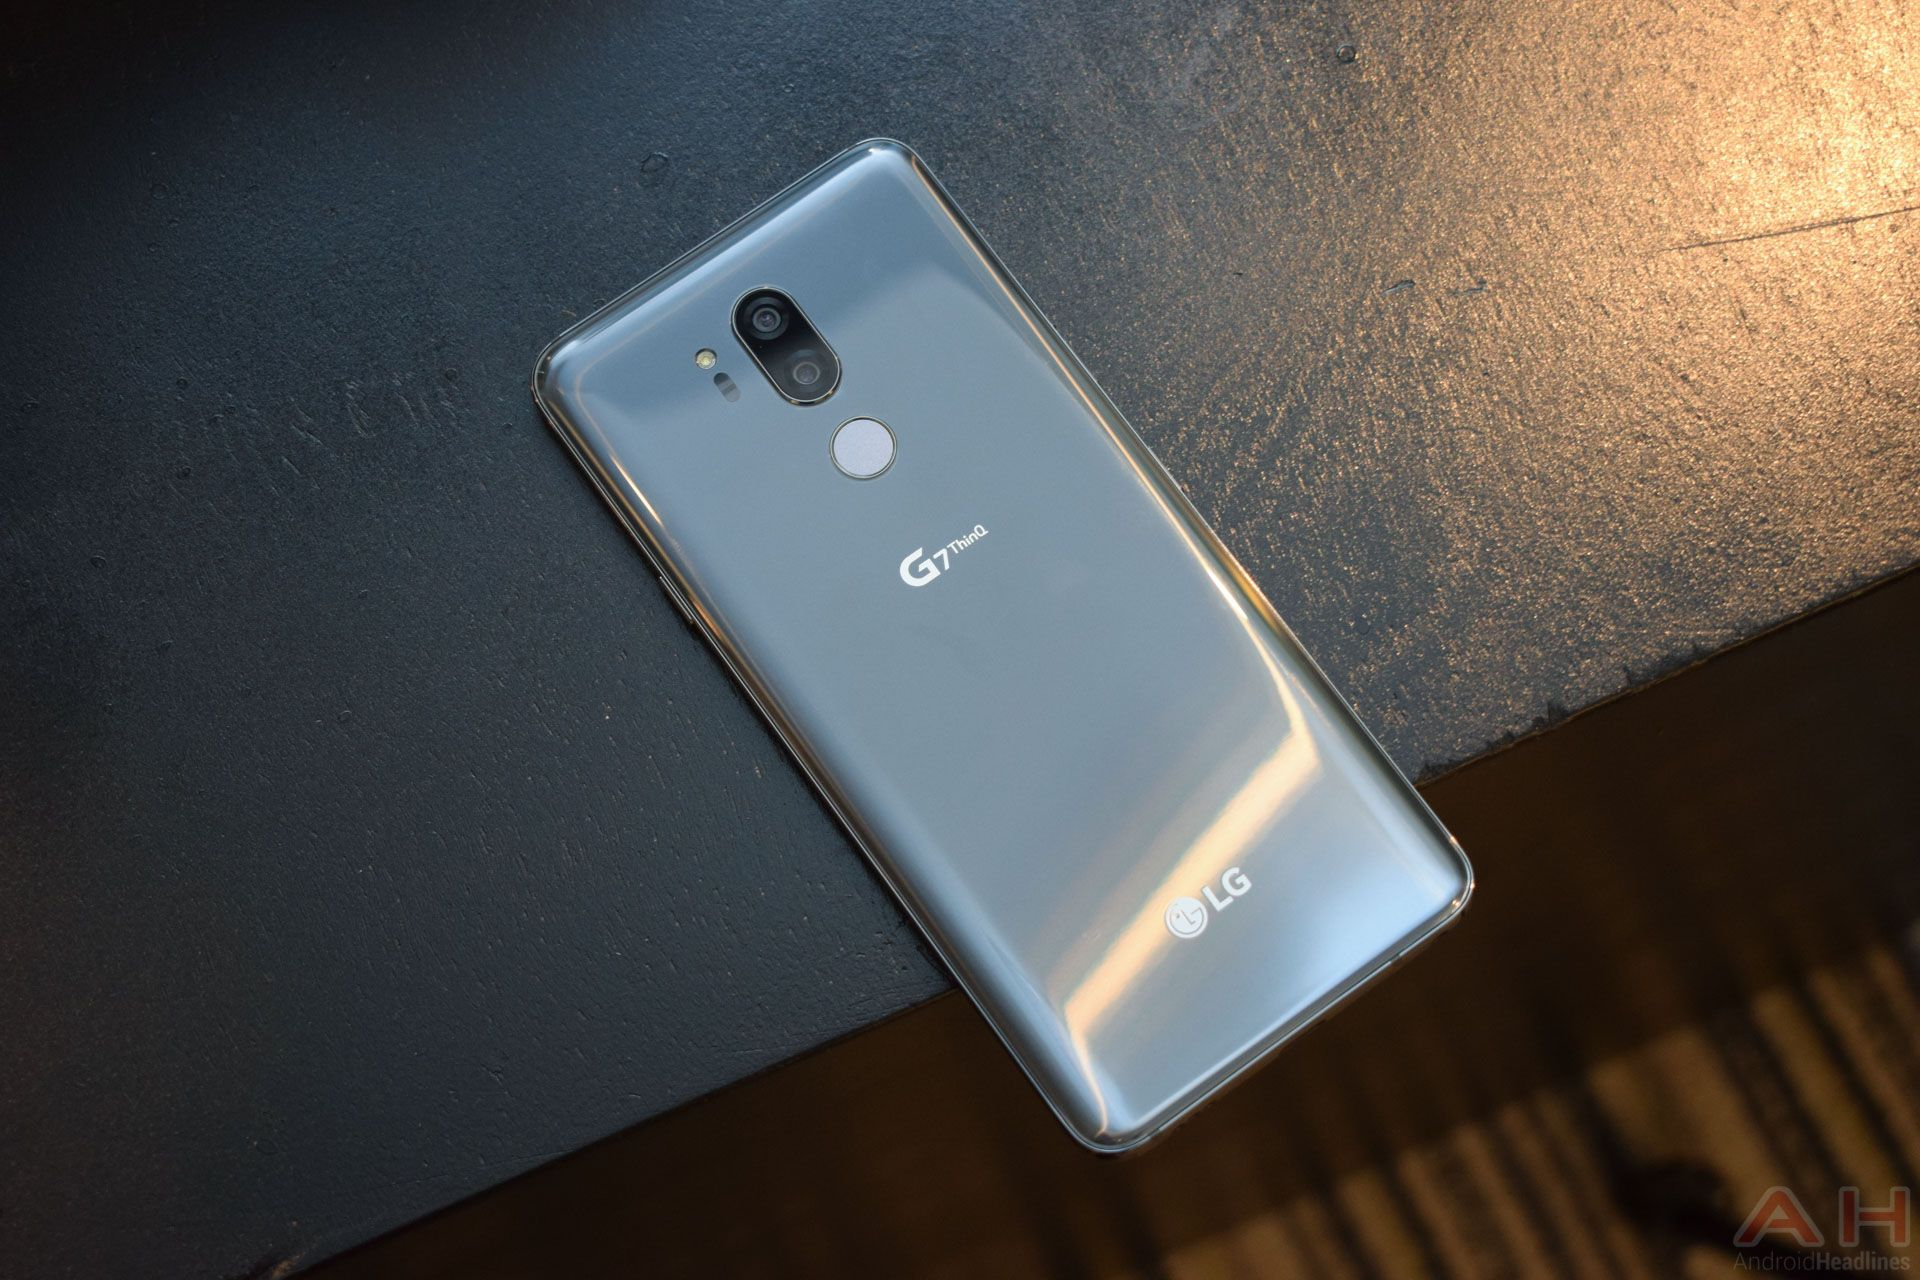 T Mobile S Lg G7 Thinq Pre Orders Begin May 25 Offering Bogo Promo Mobile Offers Bogo Phone